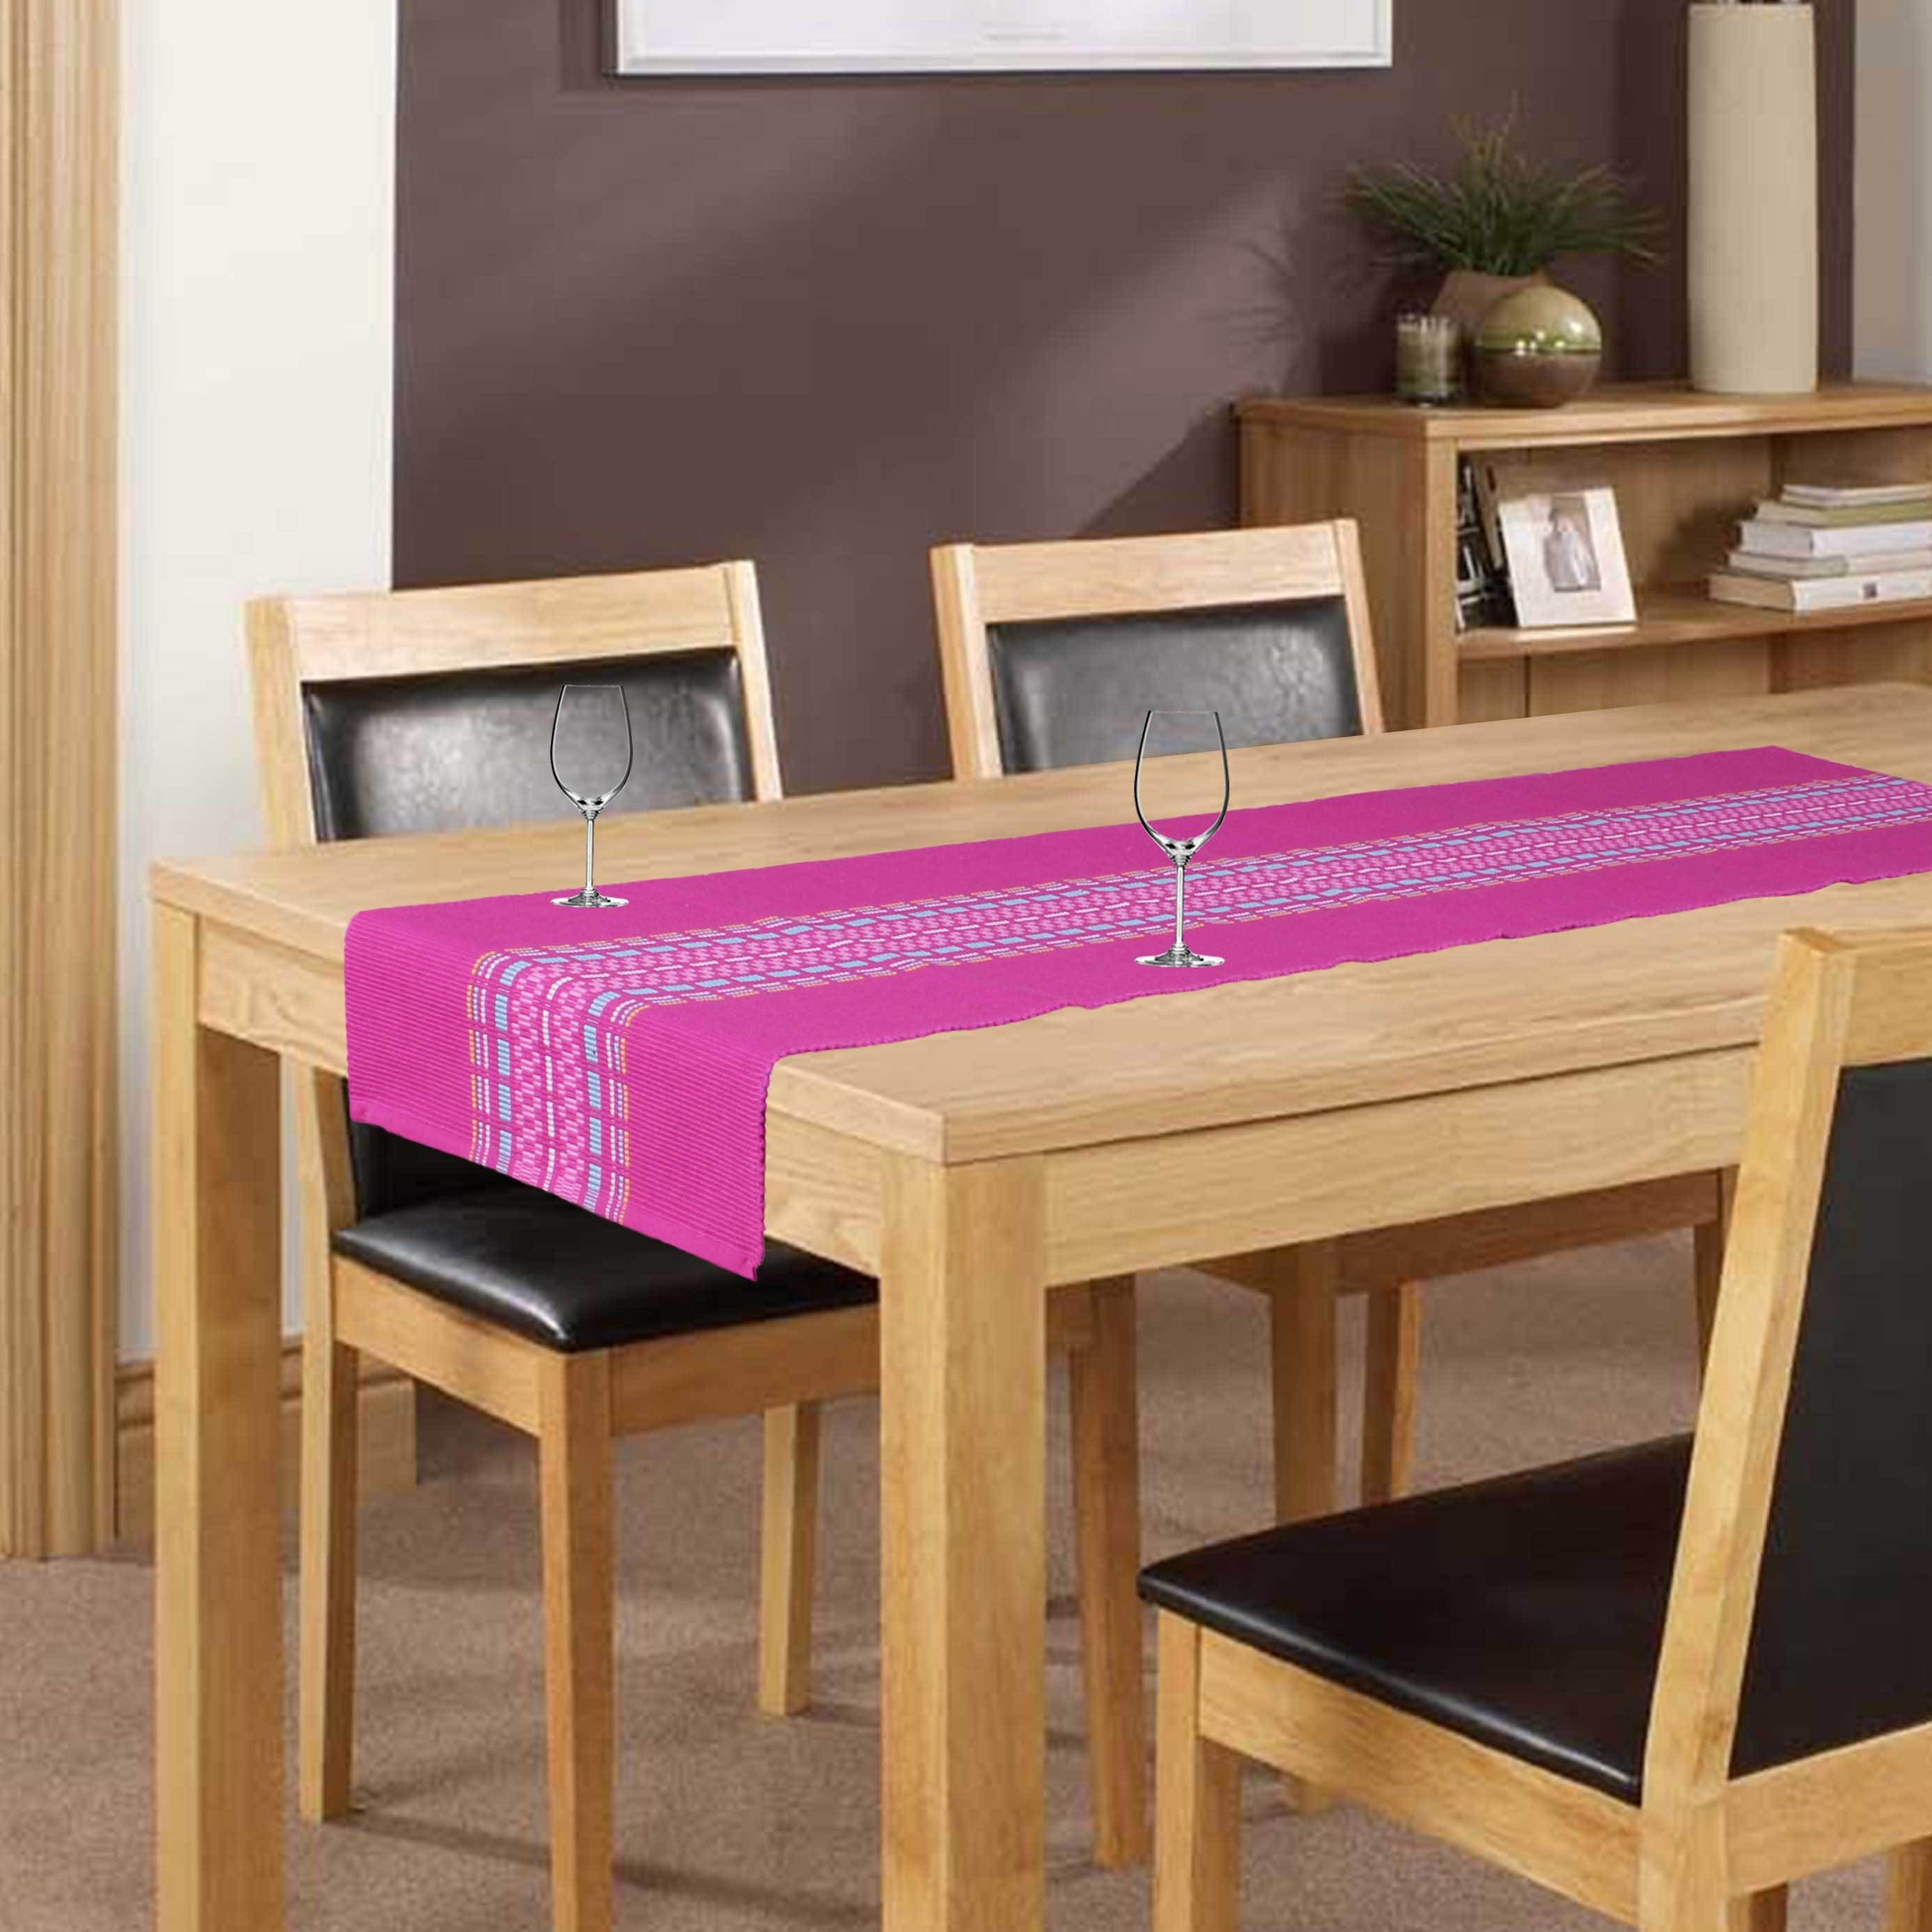 Elan Pink 140 cm Table Runner